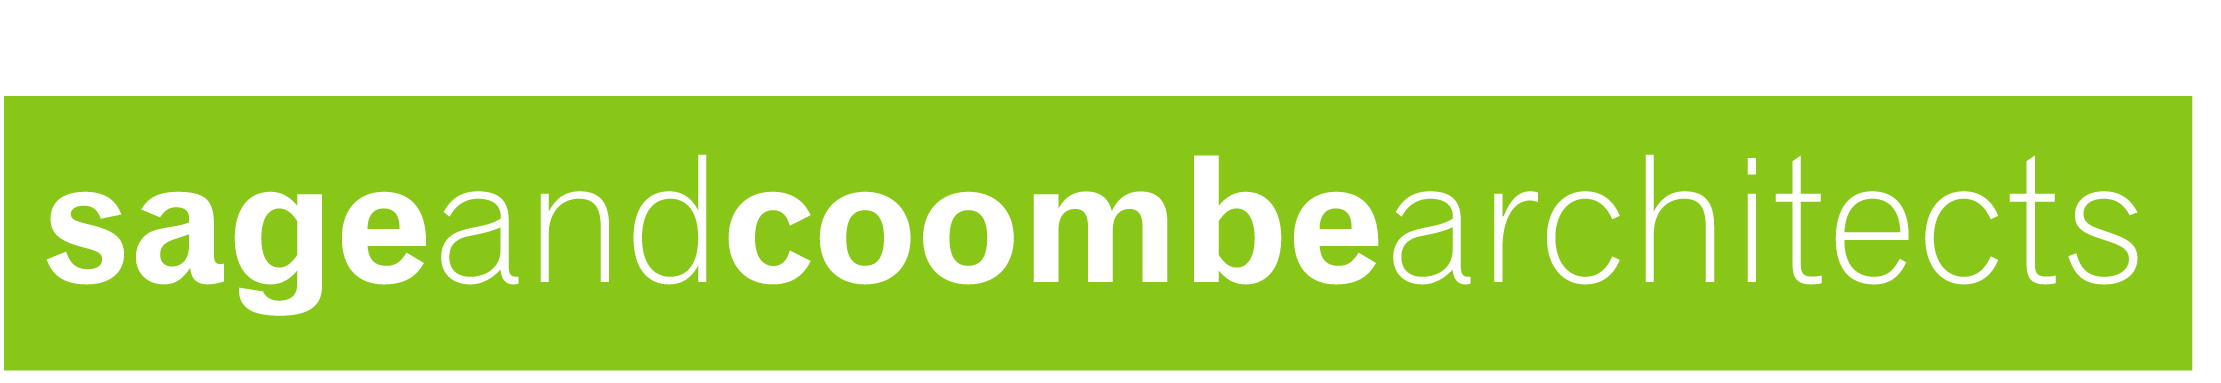 sageandcoombe-logo-green.png